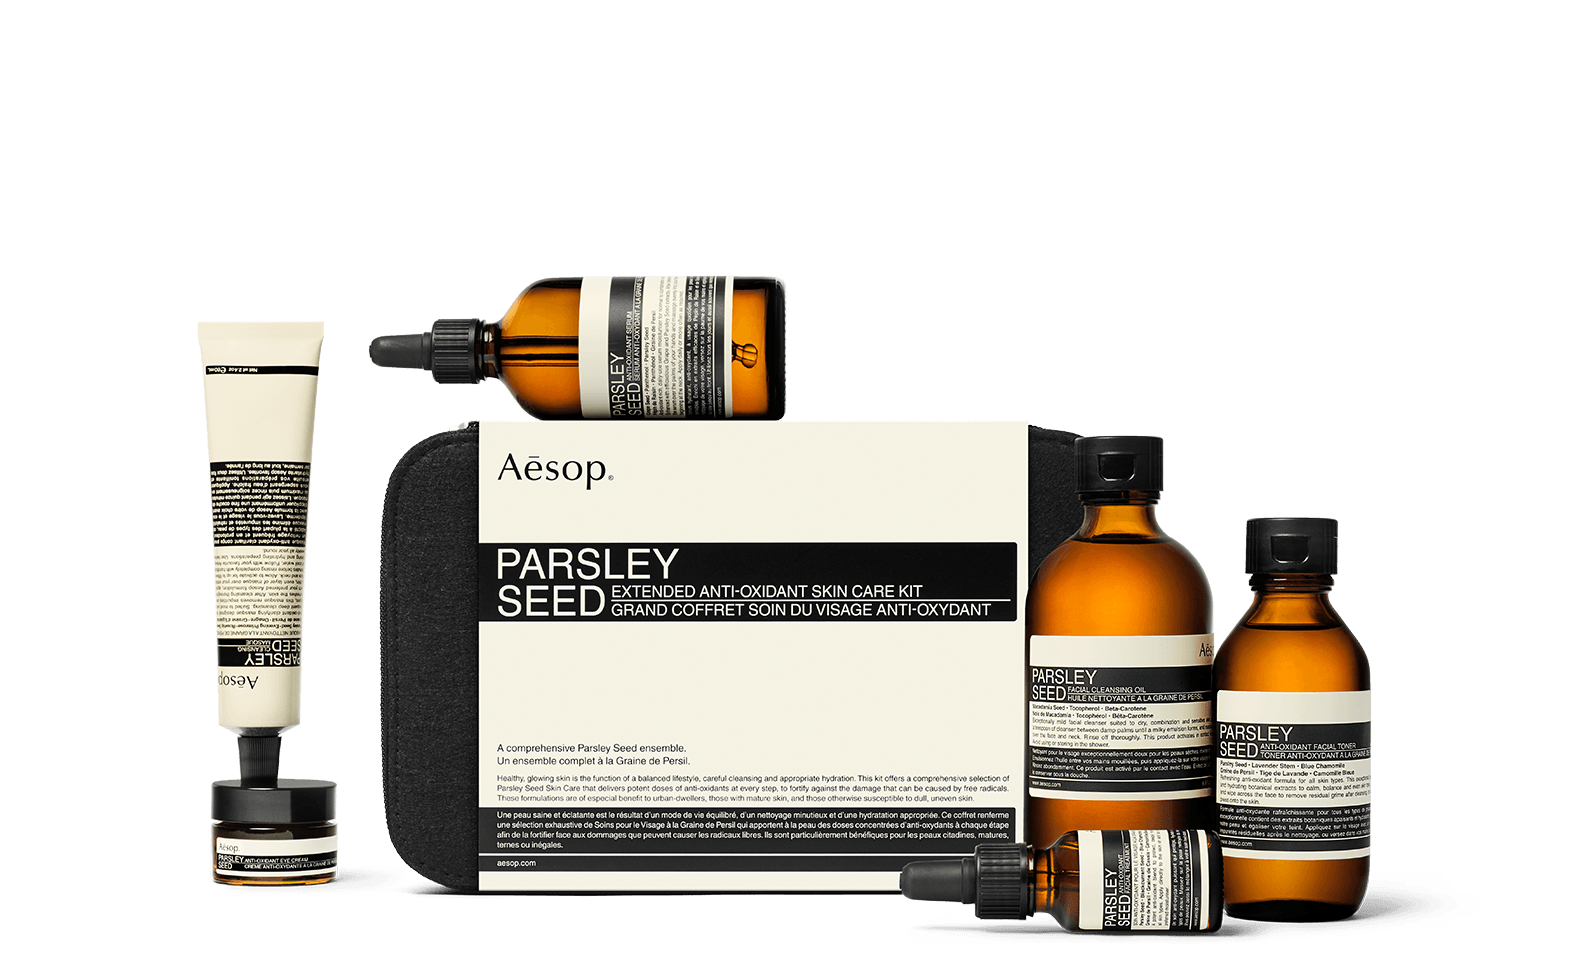 Parsley Seed Extended Anti Oxidant Skin Care Kit by Aesop